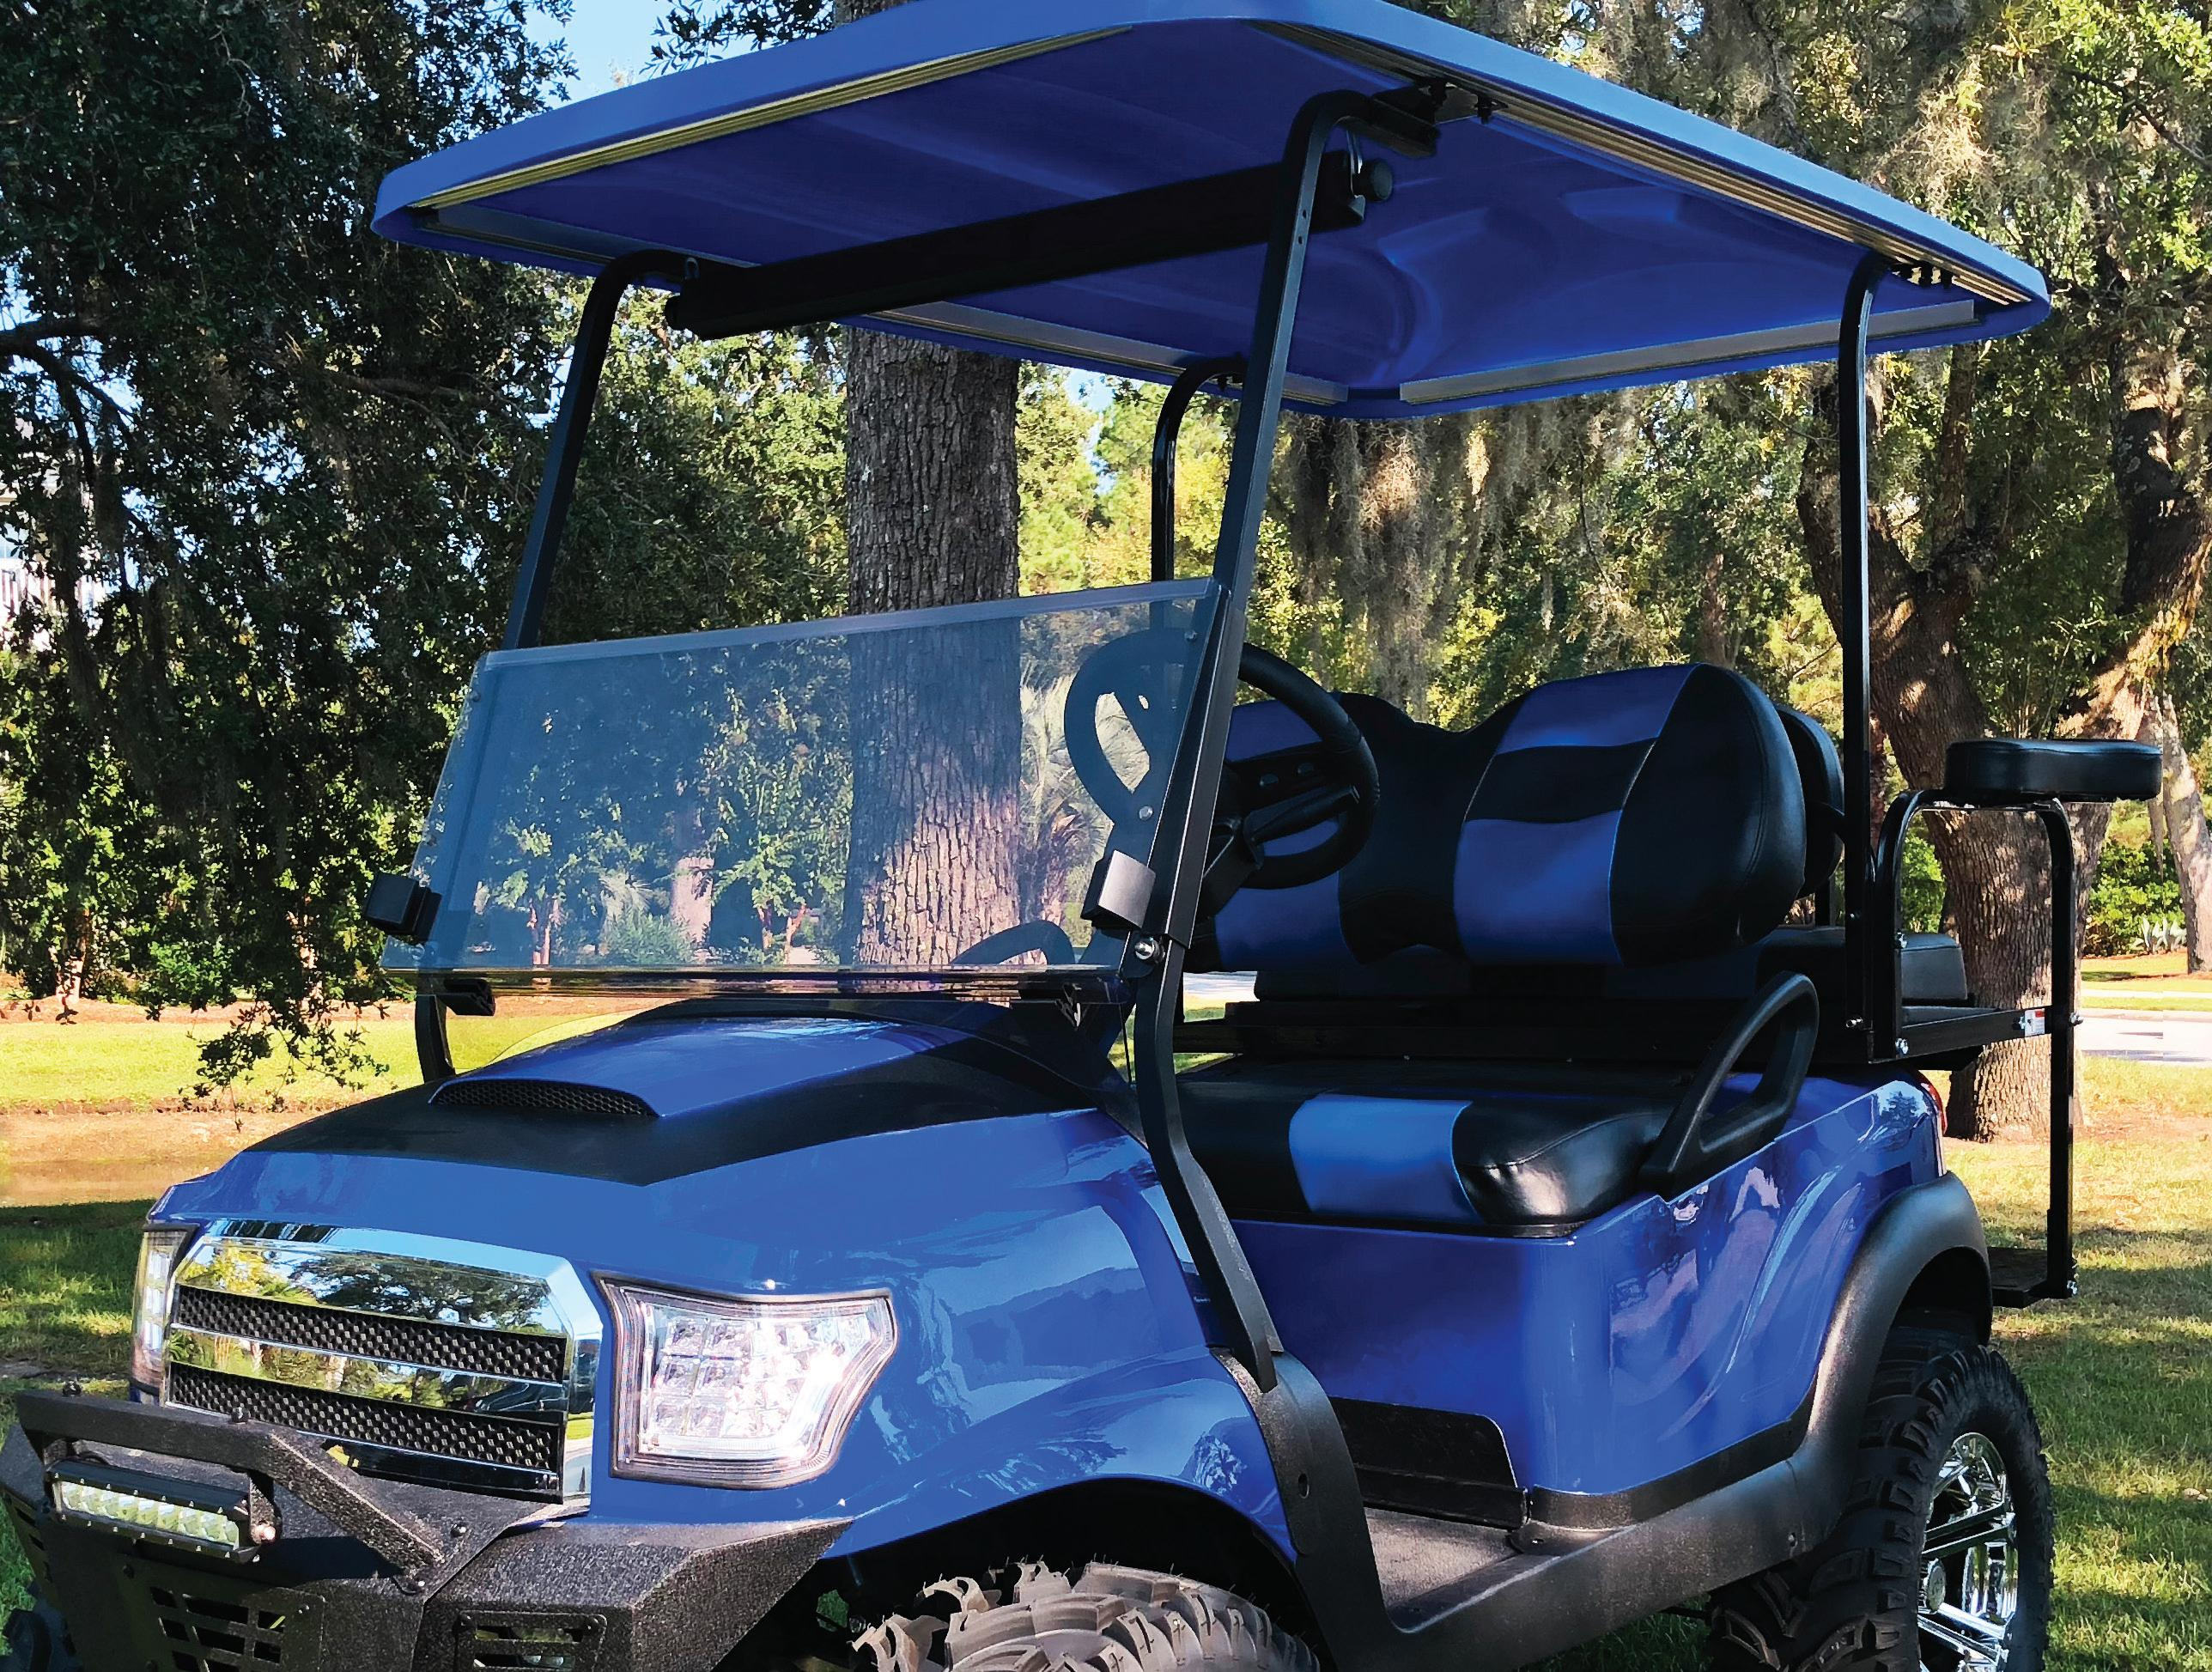 Page 36 of Golf Carting's GUIDE TO WINDSHIELDS